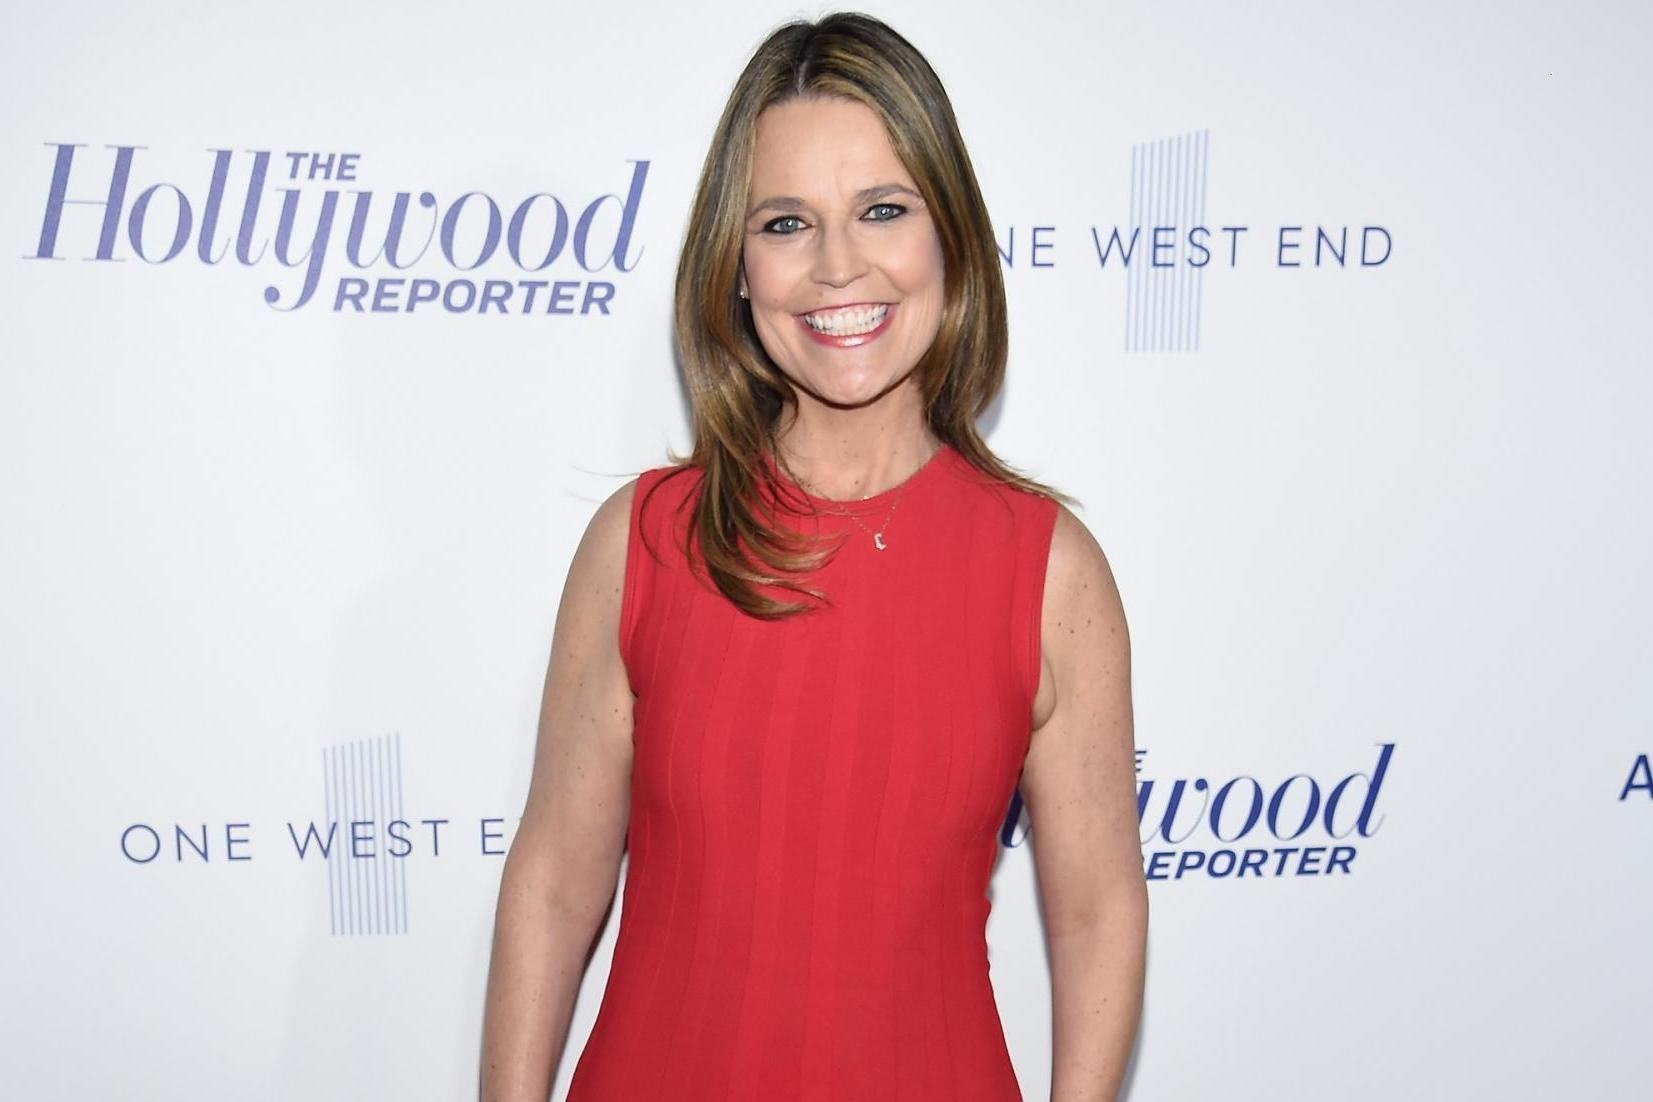 Savannah Guthrie Loses Vision In One Eye After Son Hits Her With Toy Train The Independent The Independent